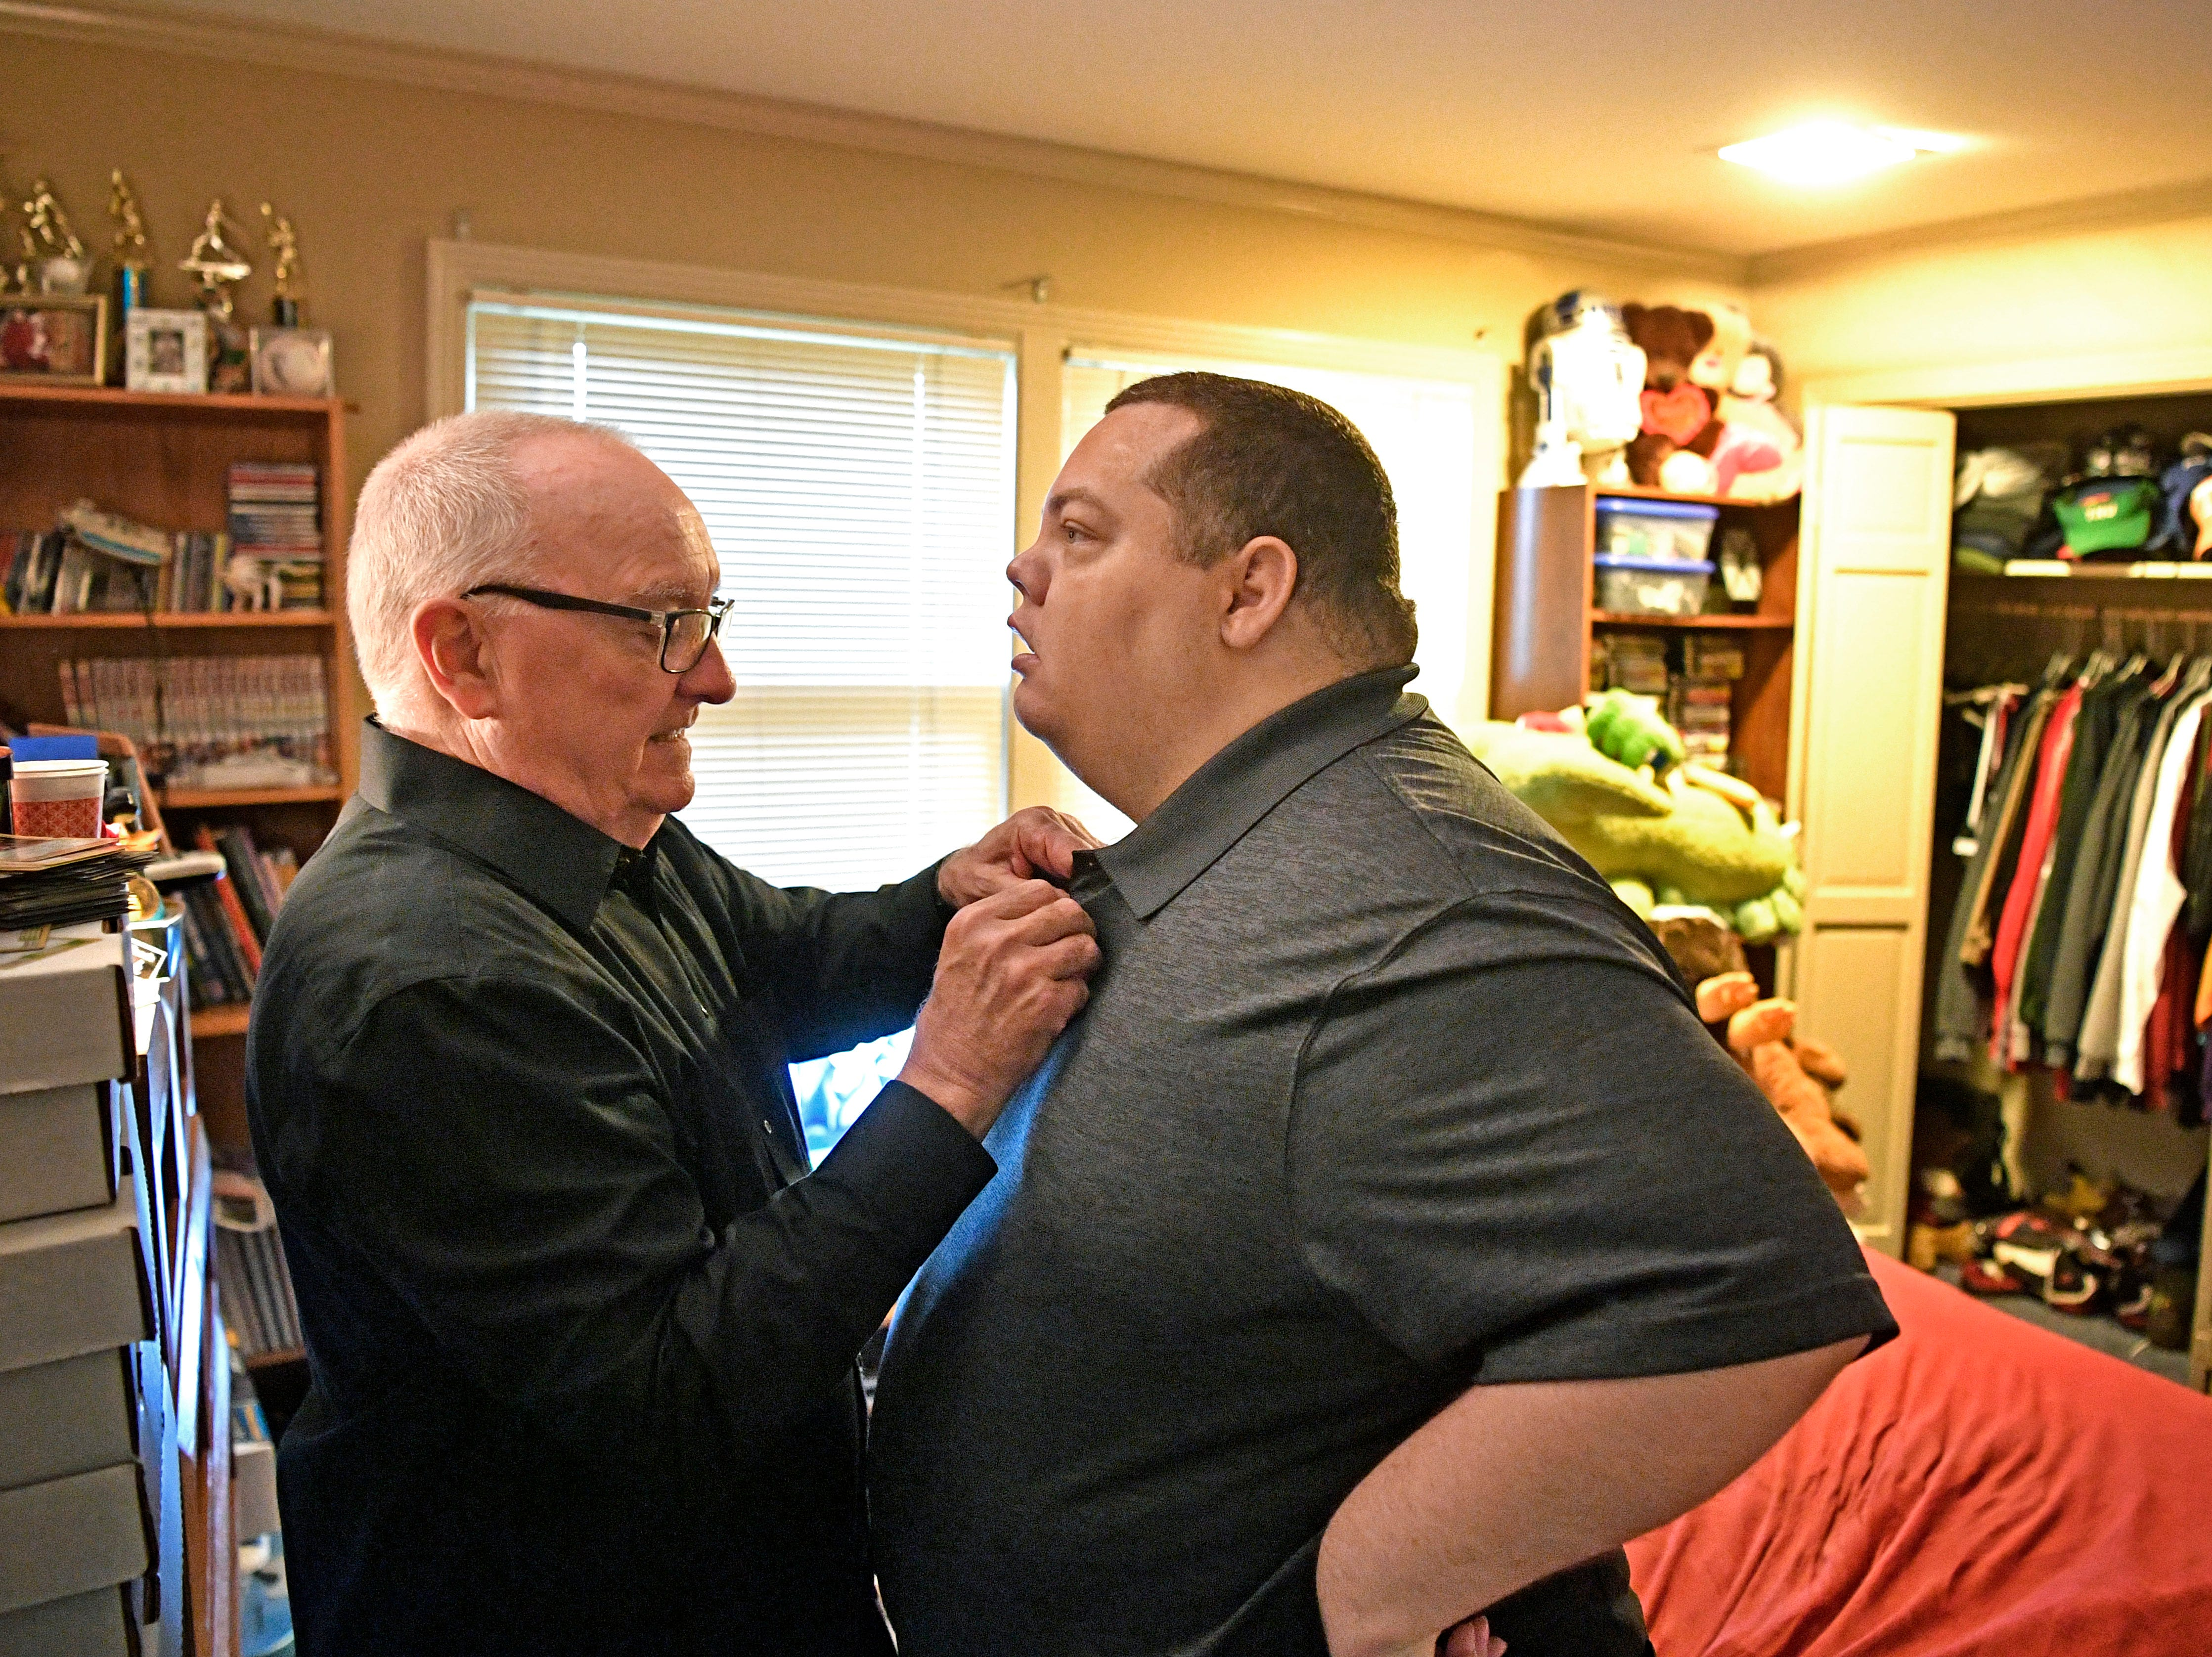 Jeff Schnelle helps get his son Brian ready for his big day. Brian graduated from Trevecca on Saturday after 12 years as a student. He is on the autism spectrum & has pursued his degree for all those years, taking about 6 credits a semester Saturday, May 4, 2019, in Nashville, Tenn.